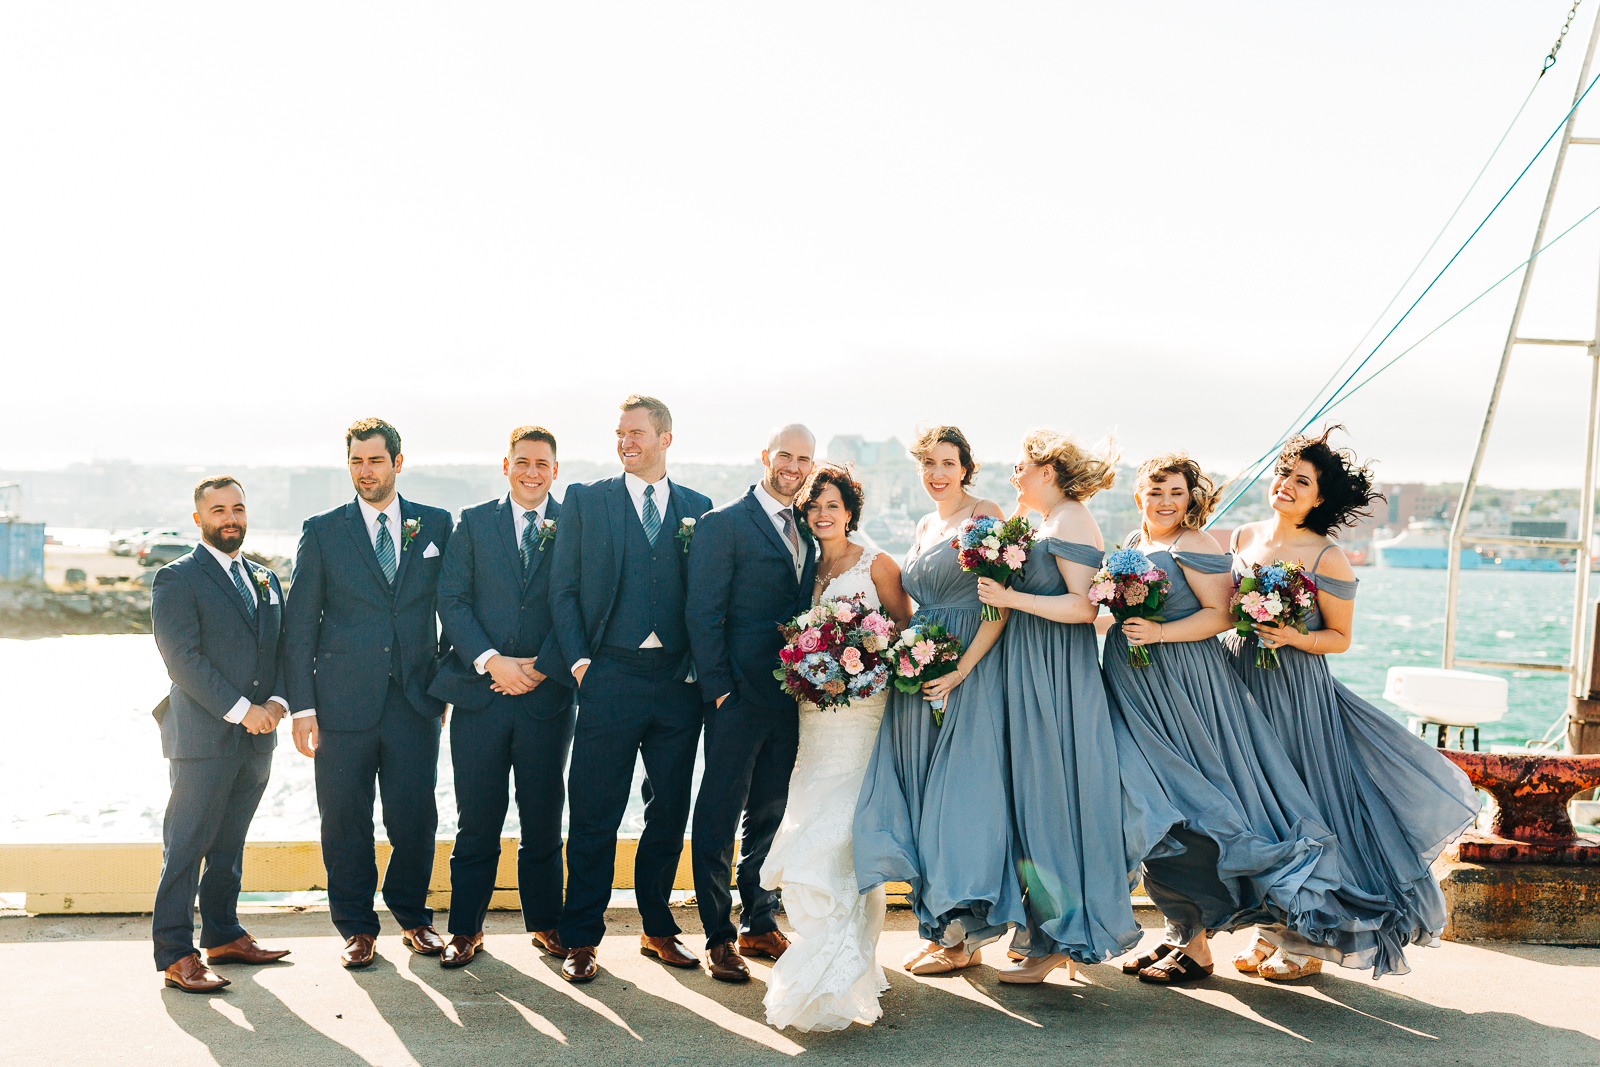 0057st-johns-wedding-photographer-caitlin-adam-yellowbelly.jpg